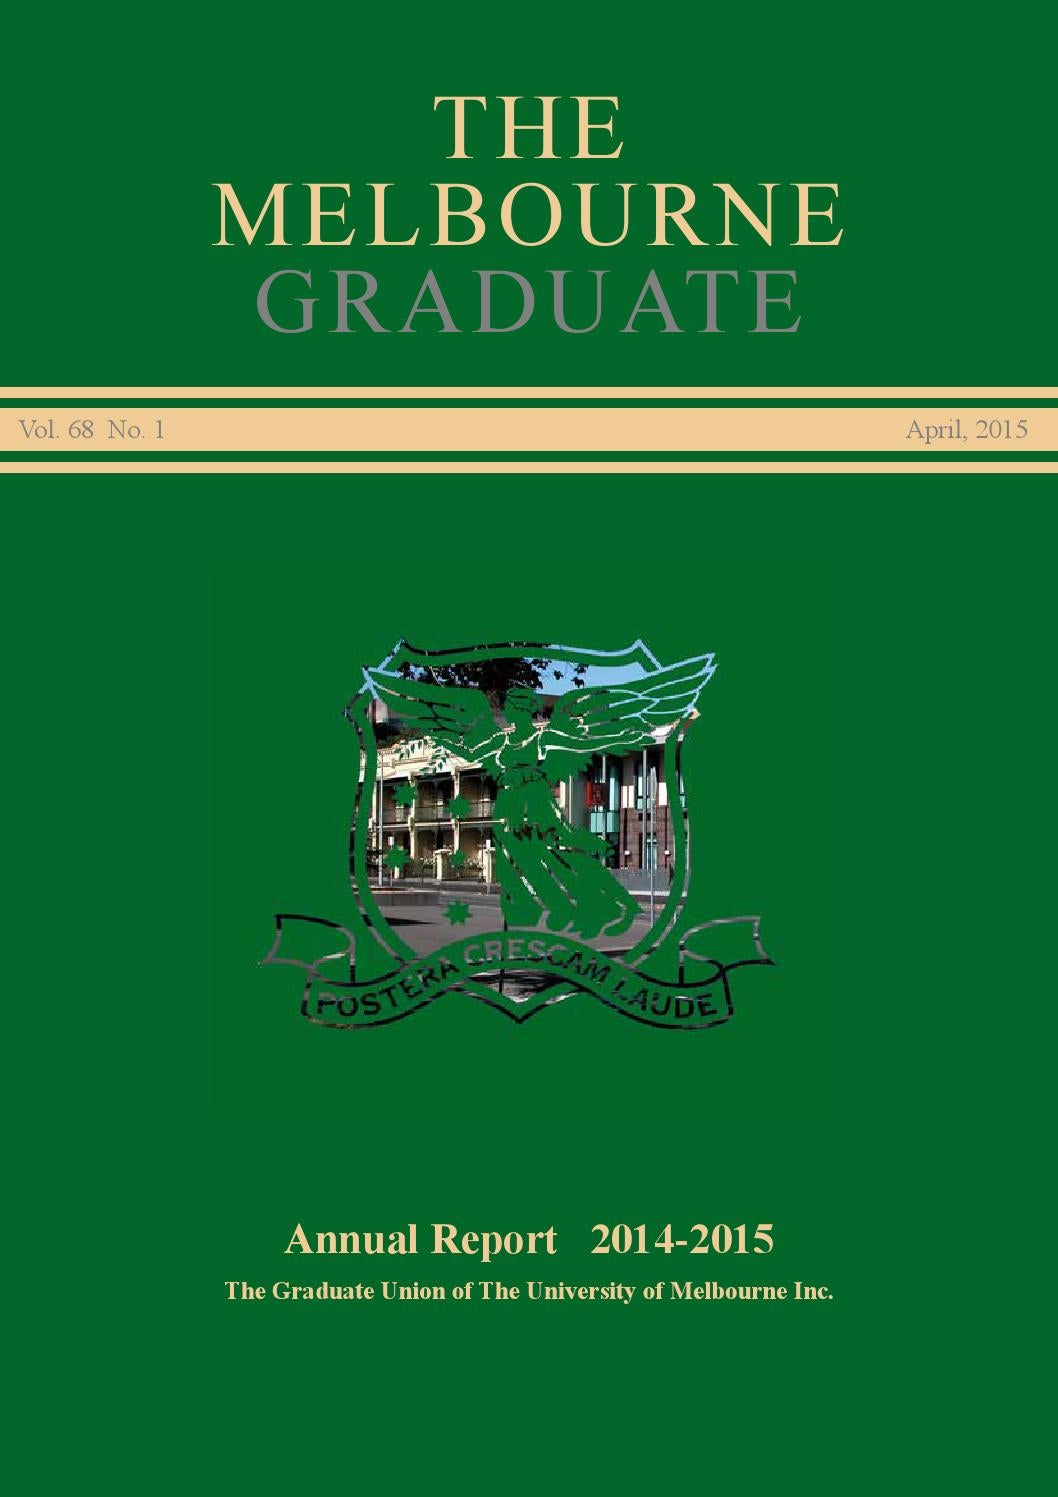 The Melbourne Graduate April 2015 (2014 Annual Report) by